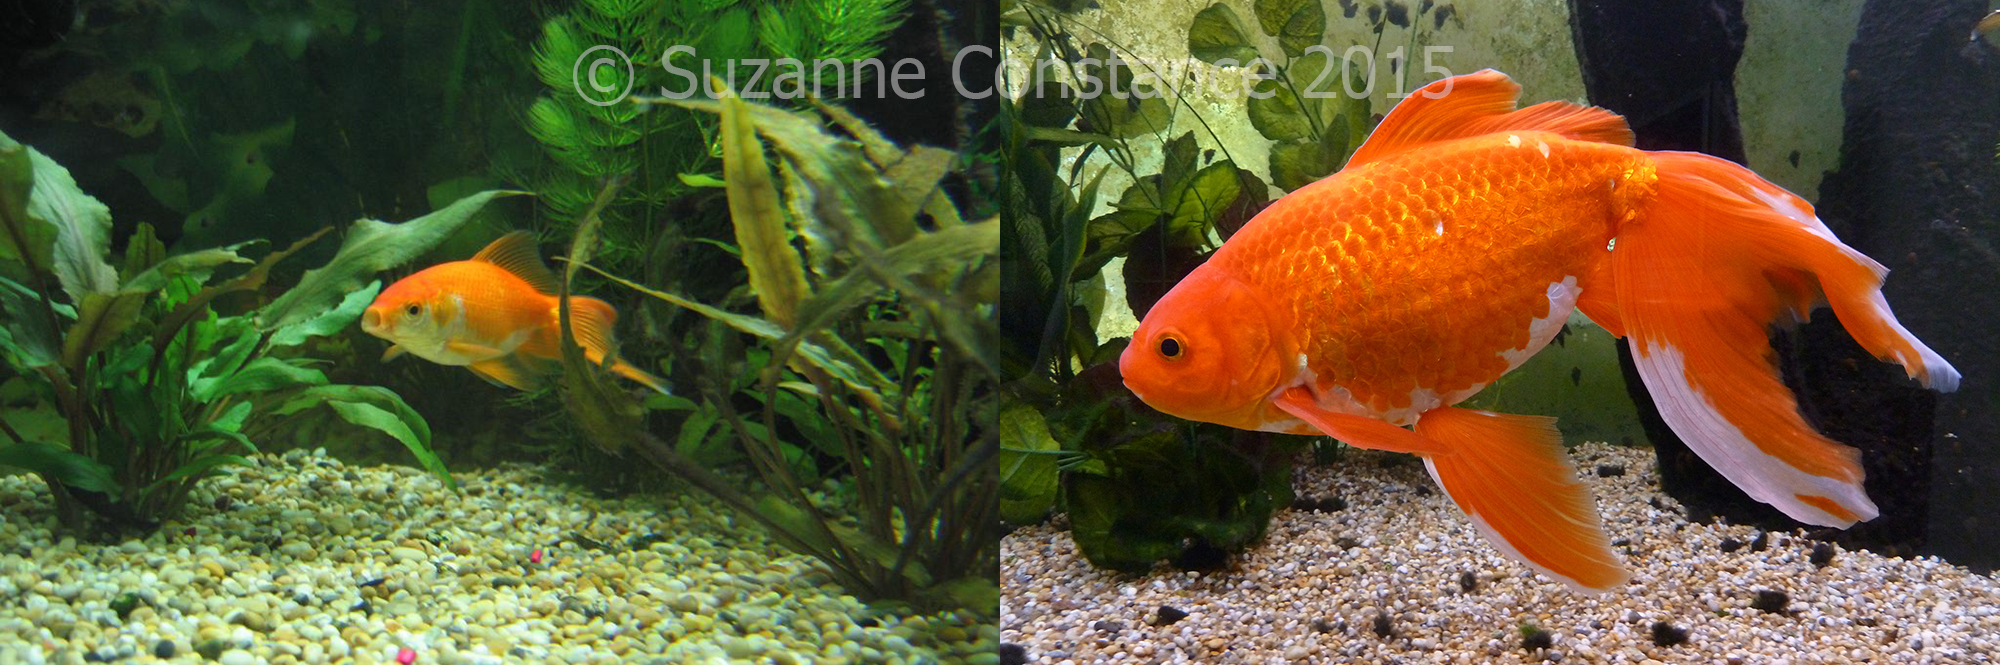 Freshwater aquarium fish by size - Pixie Was Only A Few Cm Long When He Arrived He Grew To Over 35cm